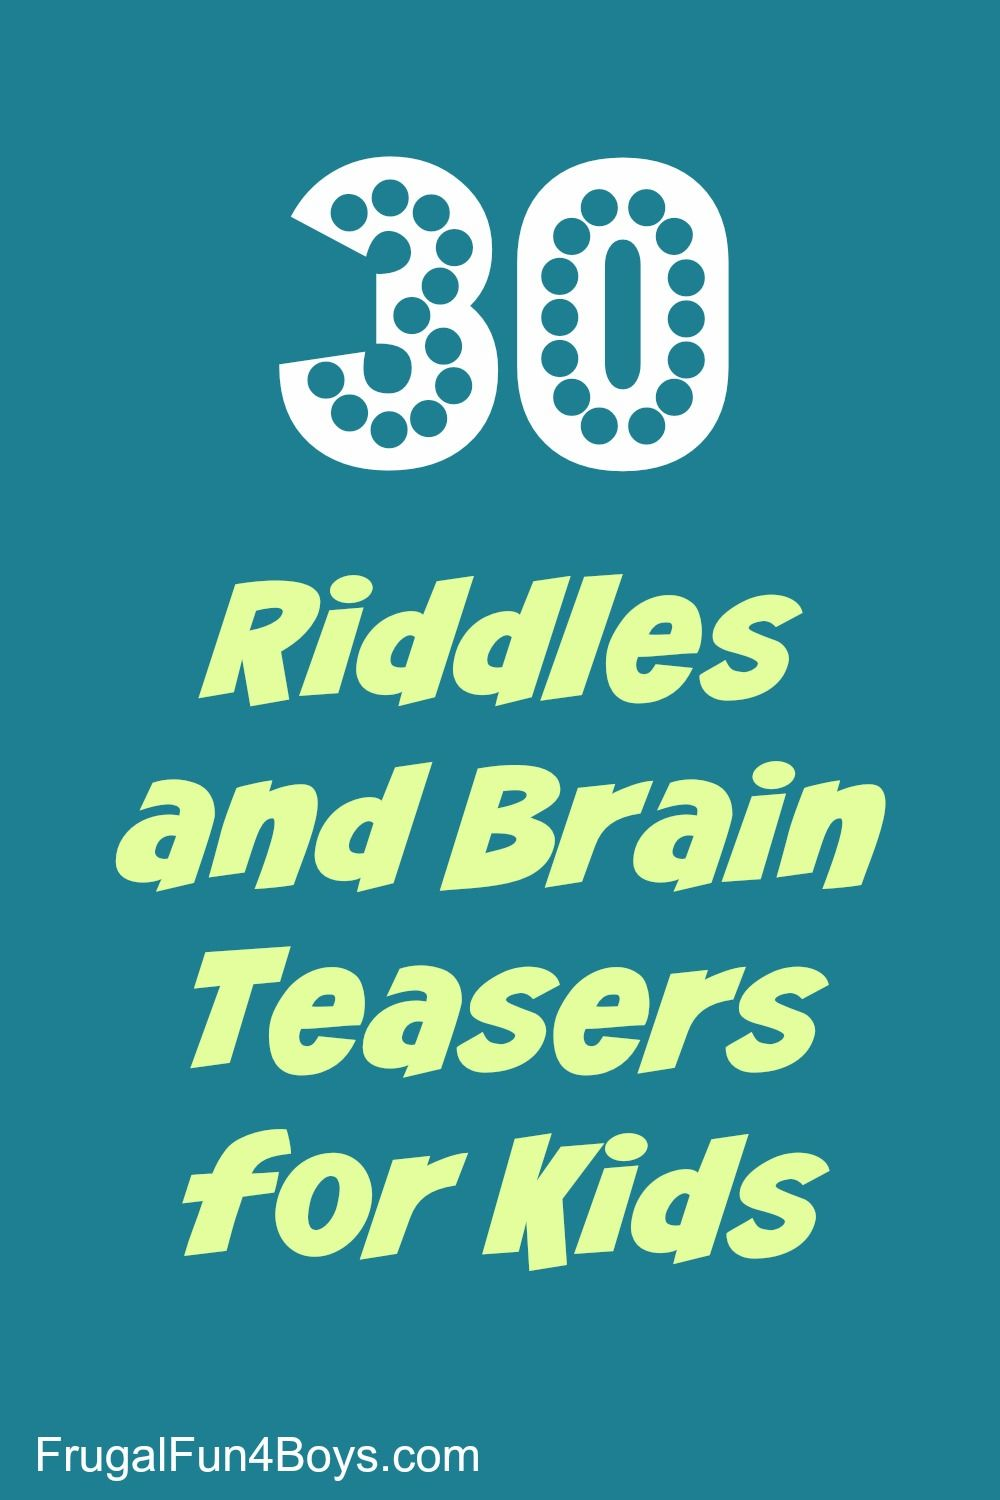 50 Riddles and Brain Teasers for Kids - Free Printable! - Frugal Fun For  Boys and Girls   Brain teasers for kids [ 1500 x 1000 Pixel ]